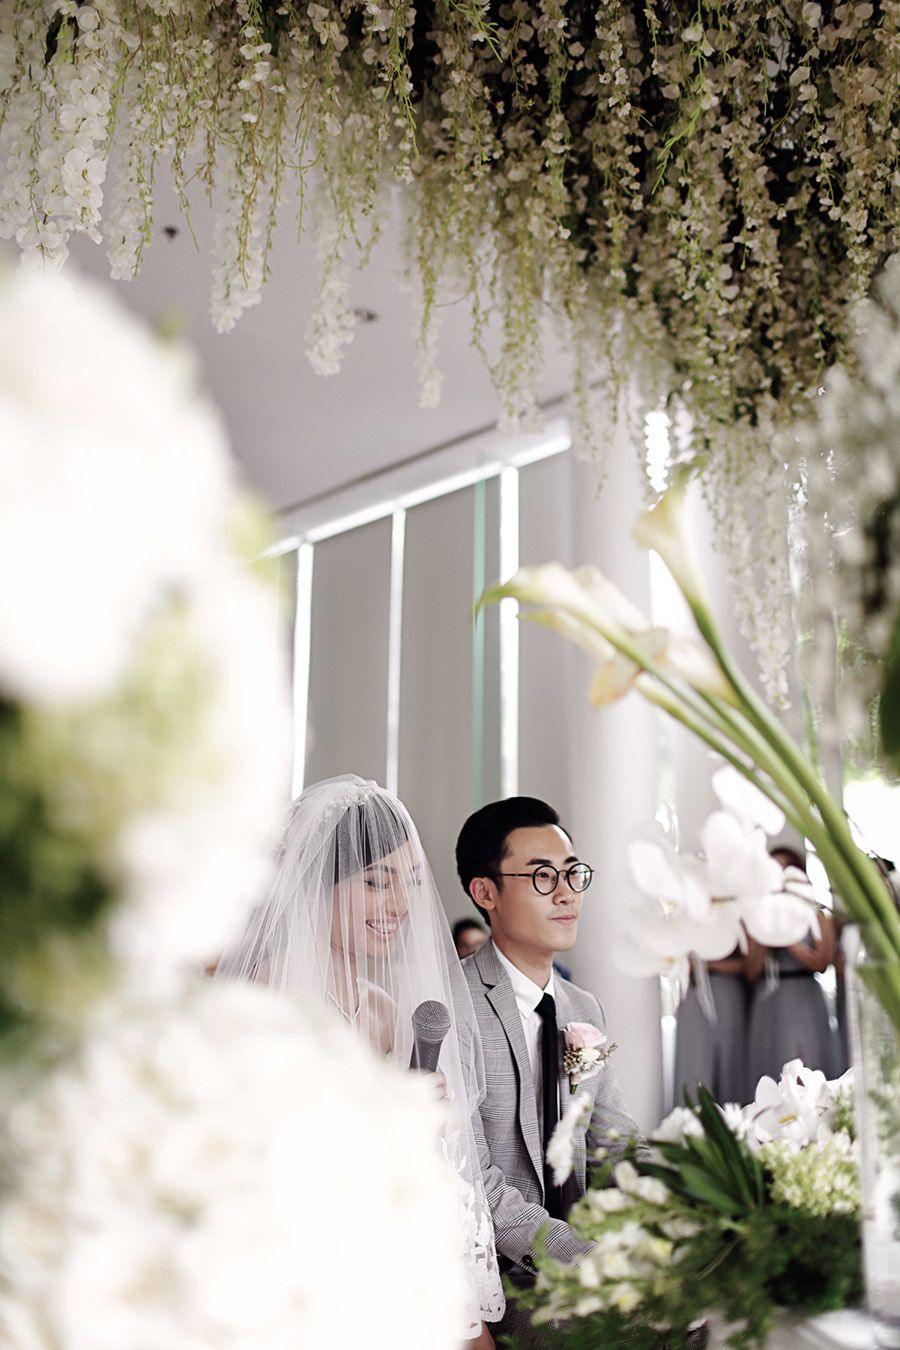 Titien and mishiels green and white wedding at padma hotel bandung green and white floral decor from fuchsia decorations and david fuchsia is bandung the junglespirit Image collections